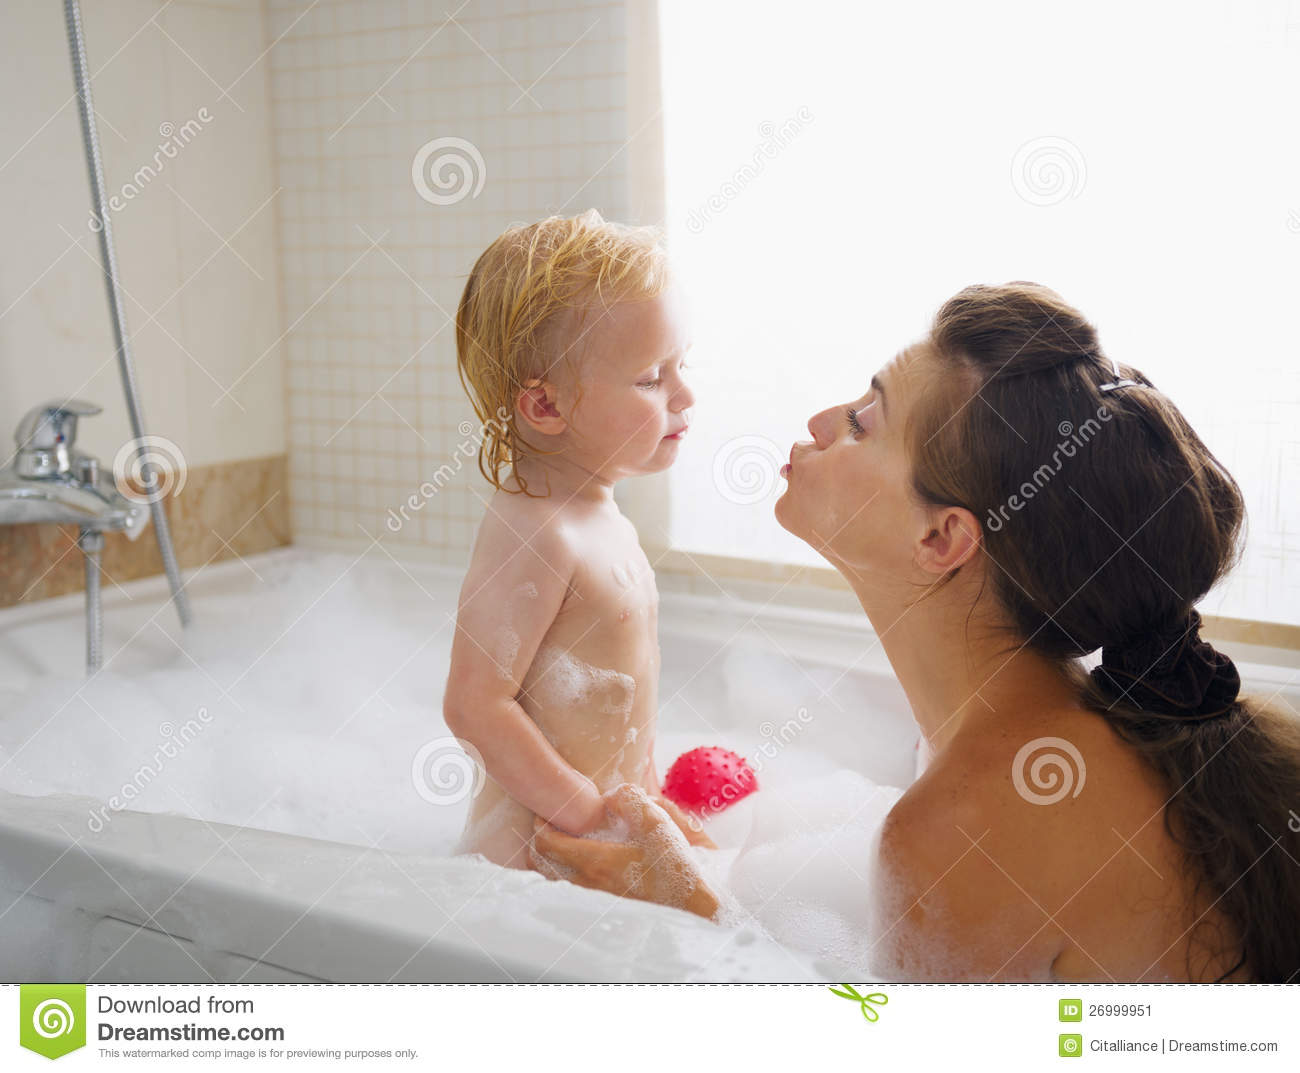 Mother Son Bath Together Stock Photo Getty Images Free